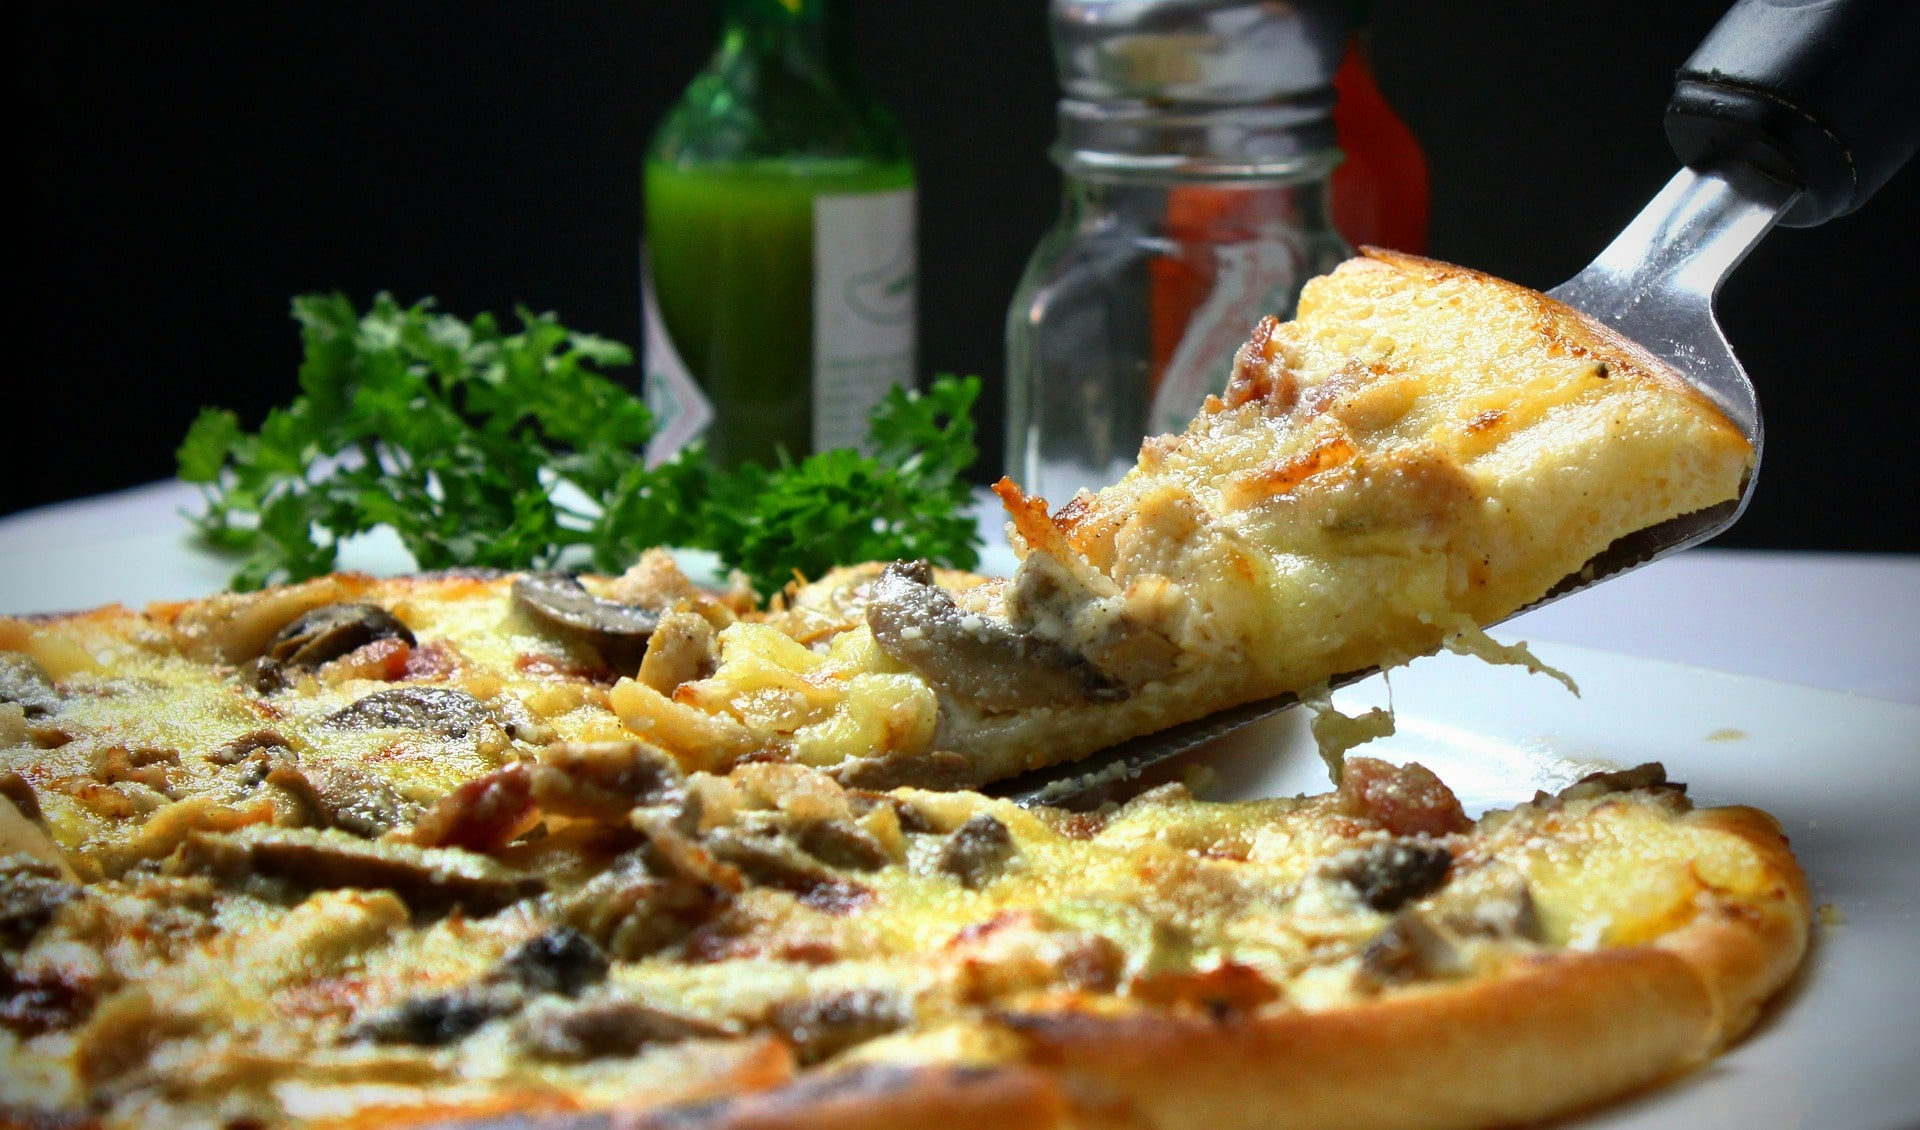 Pizzeria Business Plan for a Pizza Shop or Restaurant